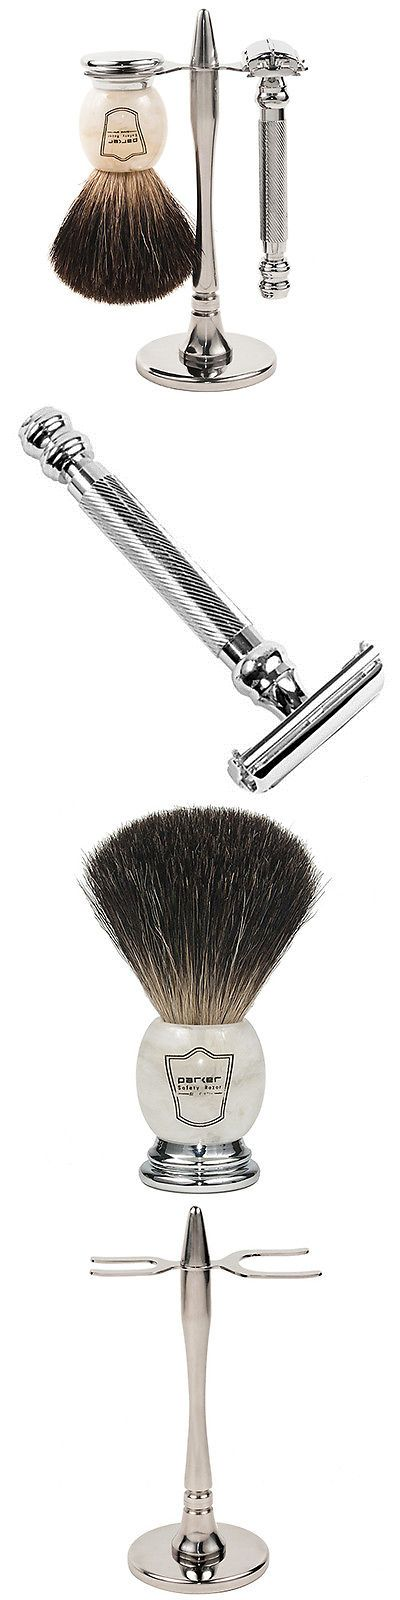 Shaving and Grooming Kits and Sets: Parker 99R Shave Set - Safety Razor, Stand And 100% Black Badger Brush Included -> BUY IT NOW ONLY: $79.99 on eBay!